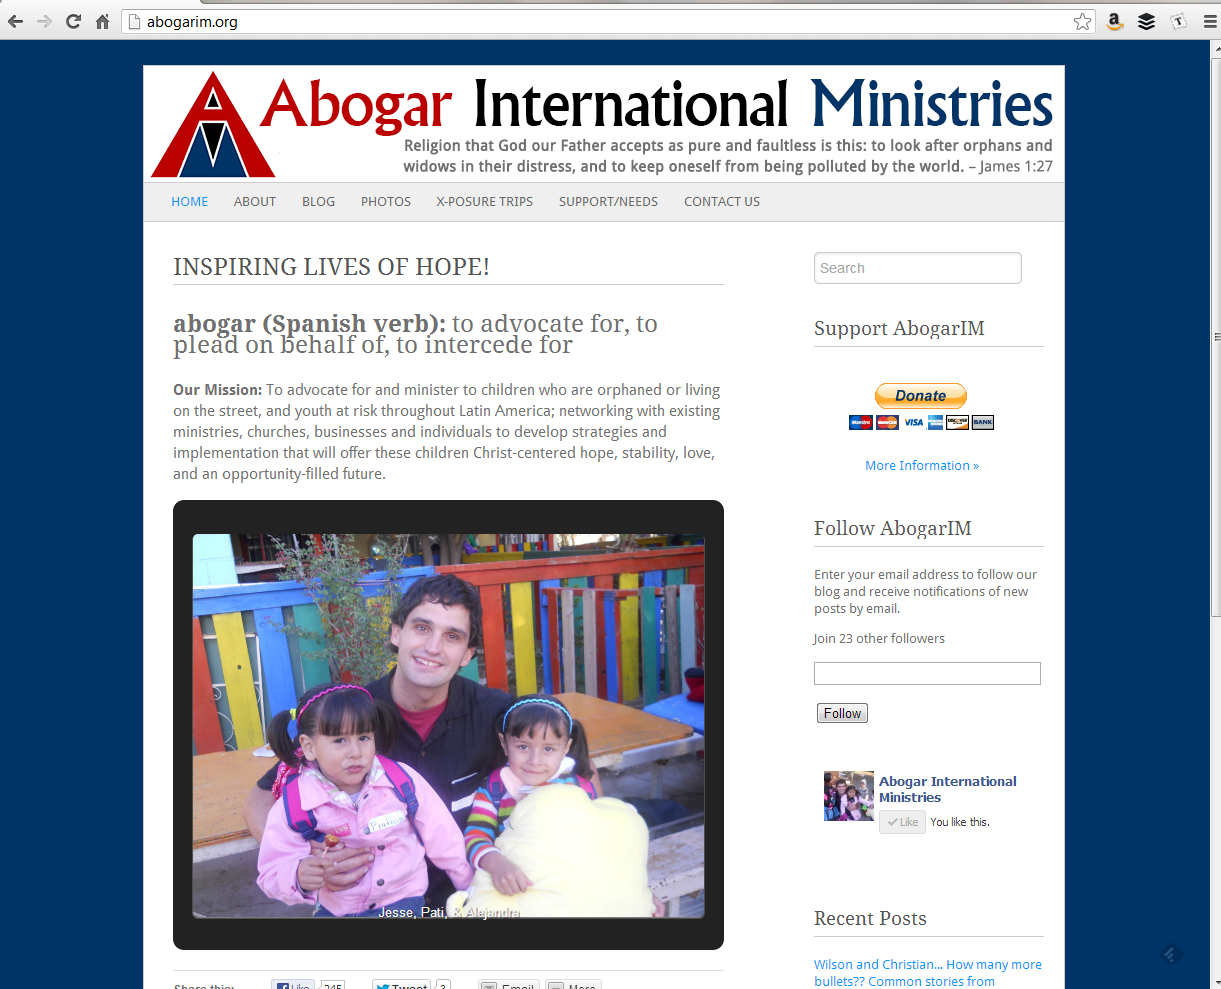 """<h4>AbogarIM.com</h4>  Powered by WordPress.com, the structure is simple, but plenty of information, a frequently-updated blog, lots of photo galleries, and custom forms punch things up a bit.  <a href=""""http://www.abogarim.org"""" target=""""_blank"""" class=""""link"""">Check it out! →</a>"""